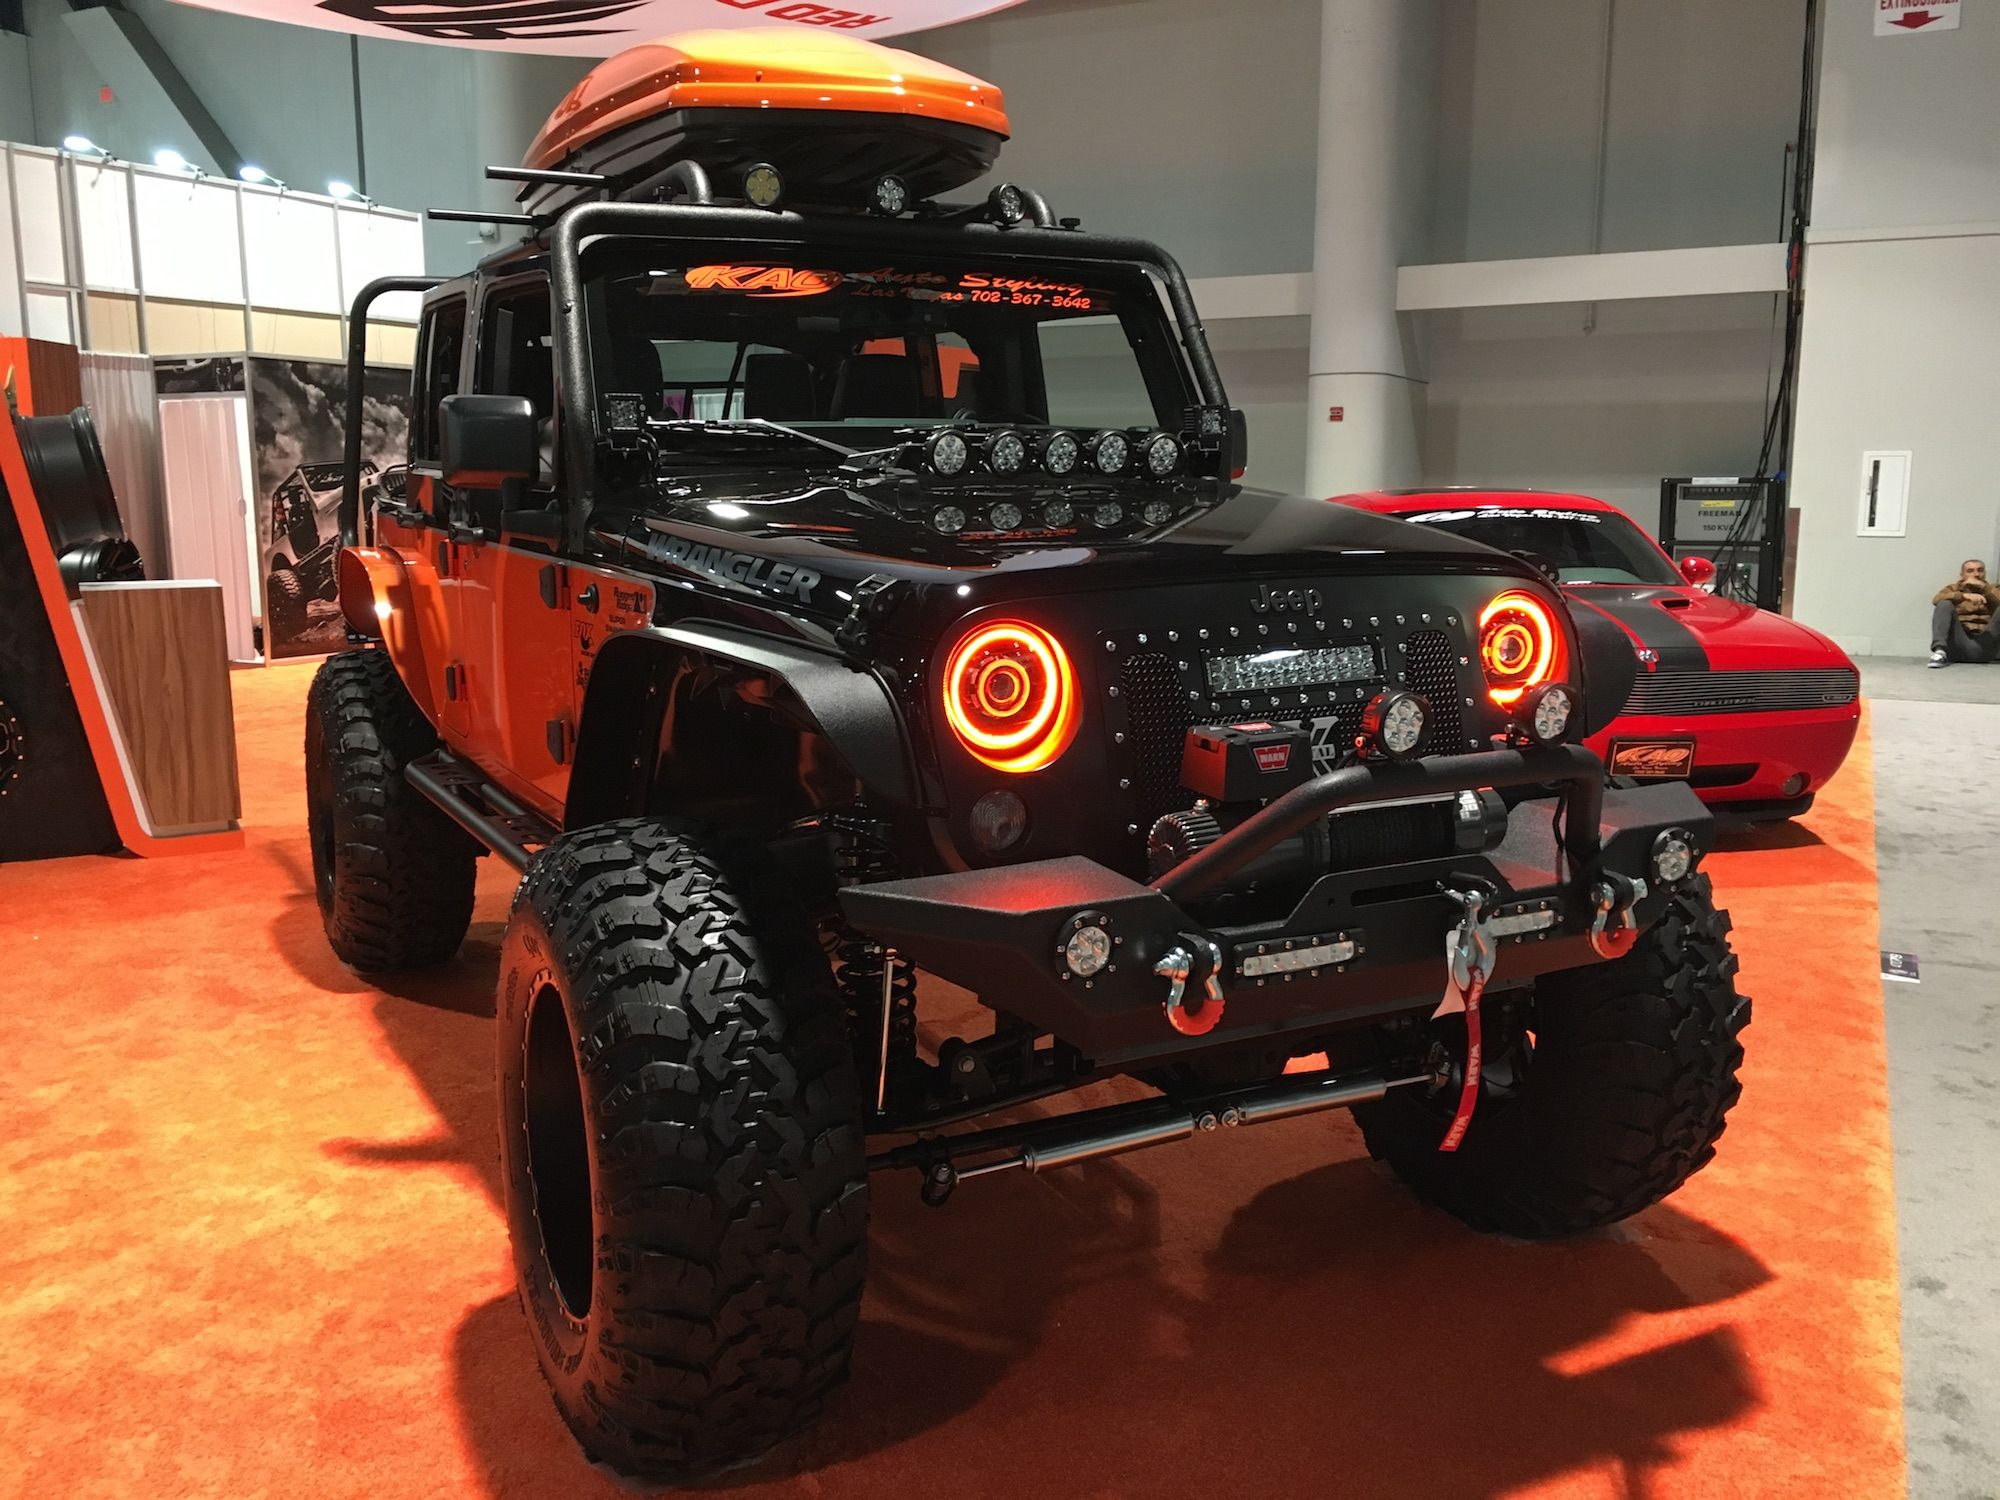 Jeeps Assemble Captain America Wrangler The Baddest Of All Jeep Construction Sema 2015 4x4s